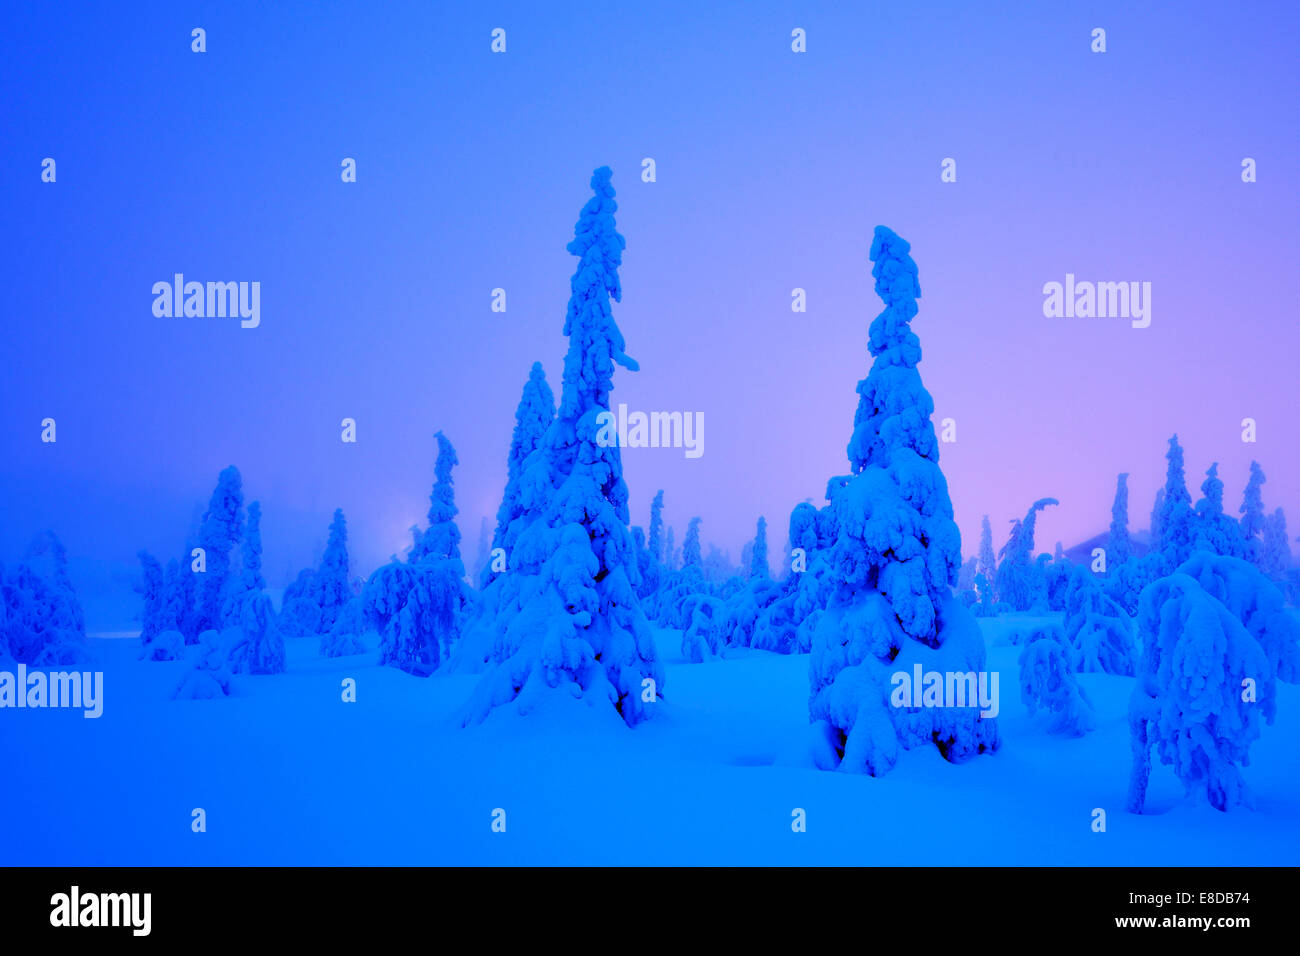 Trees in a snow-covered winter landscape, Iso Syöte, Lapland, Finland - Stock Image